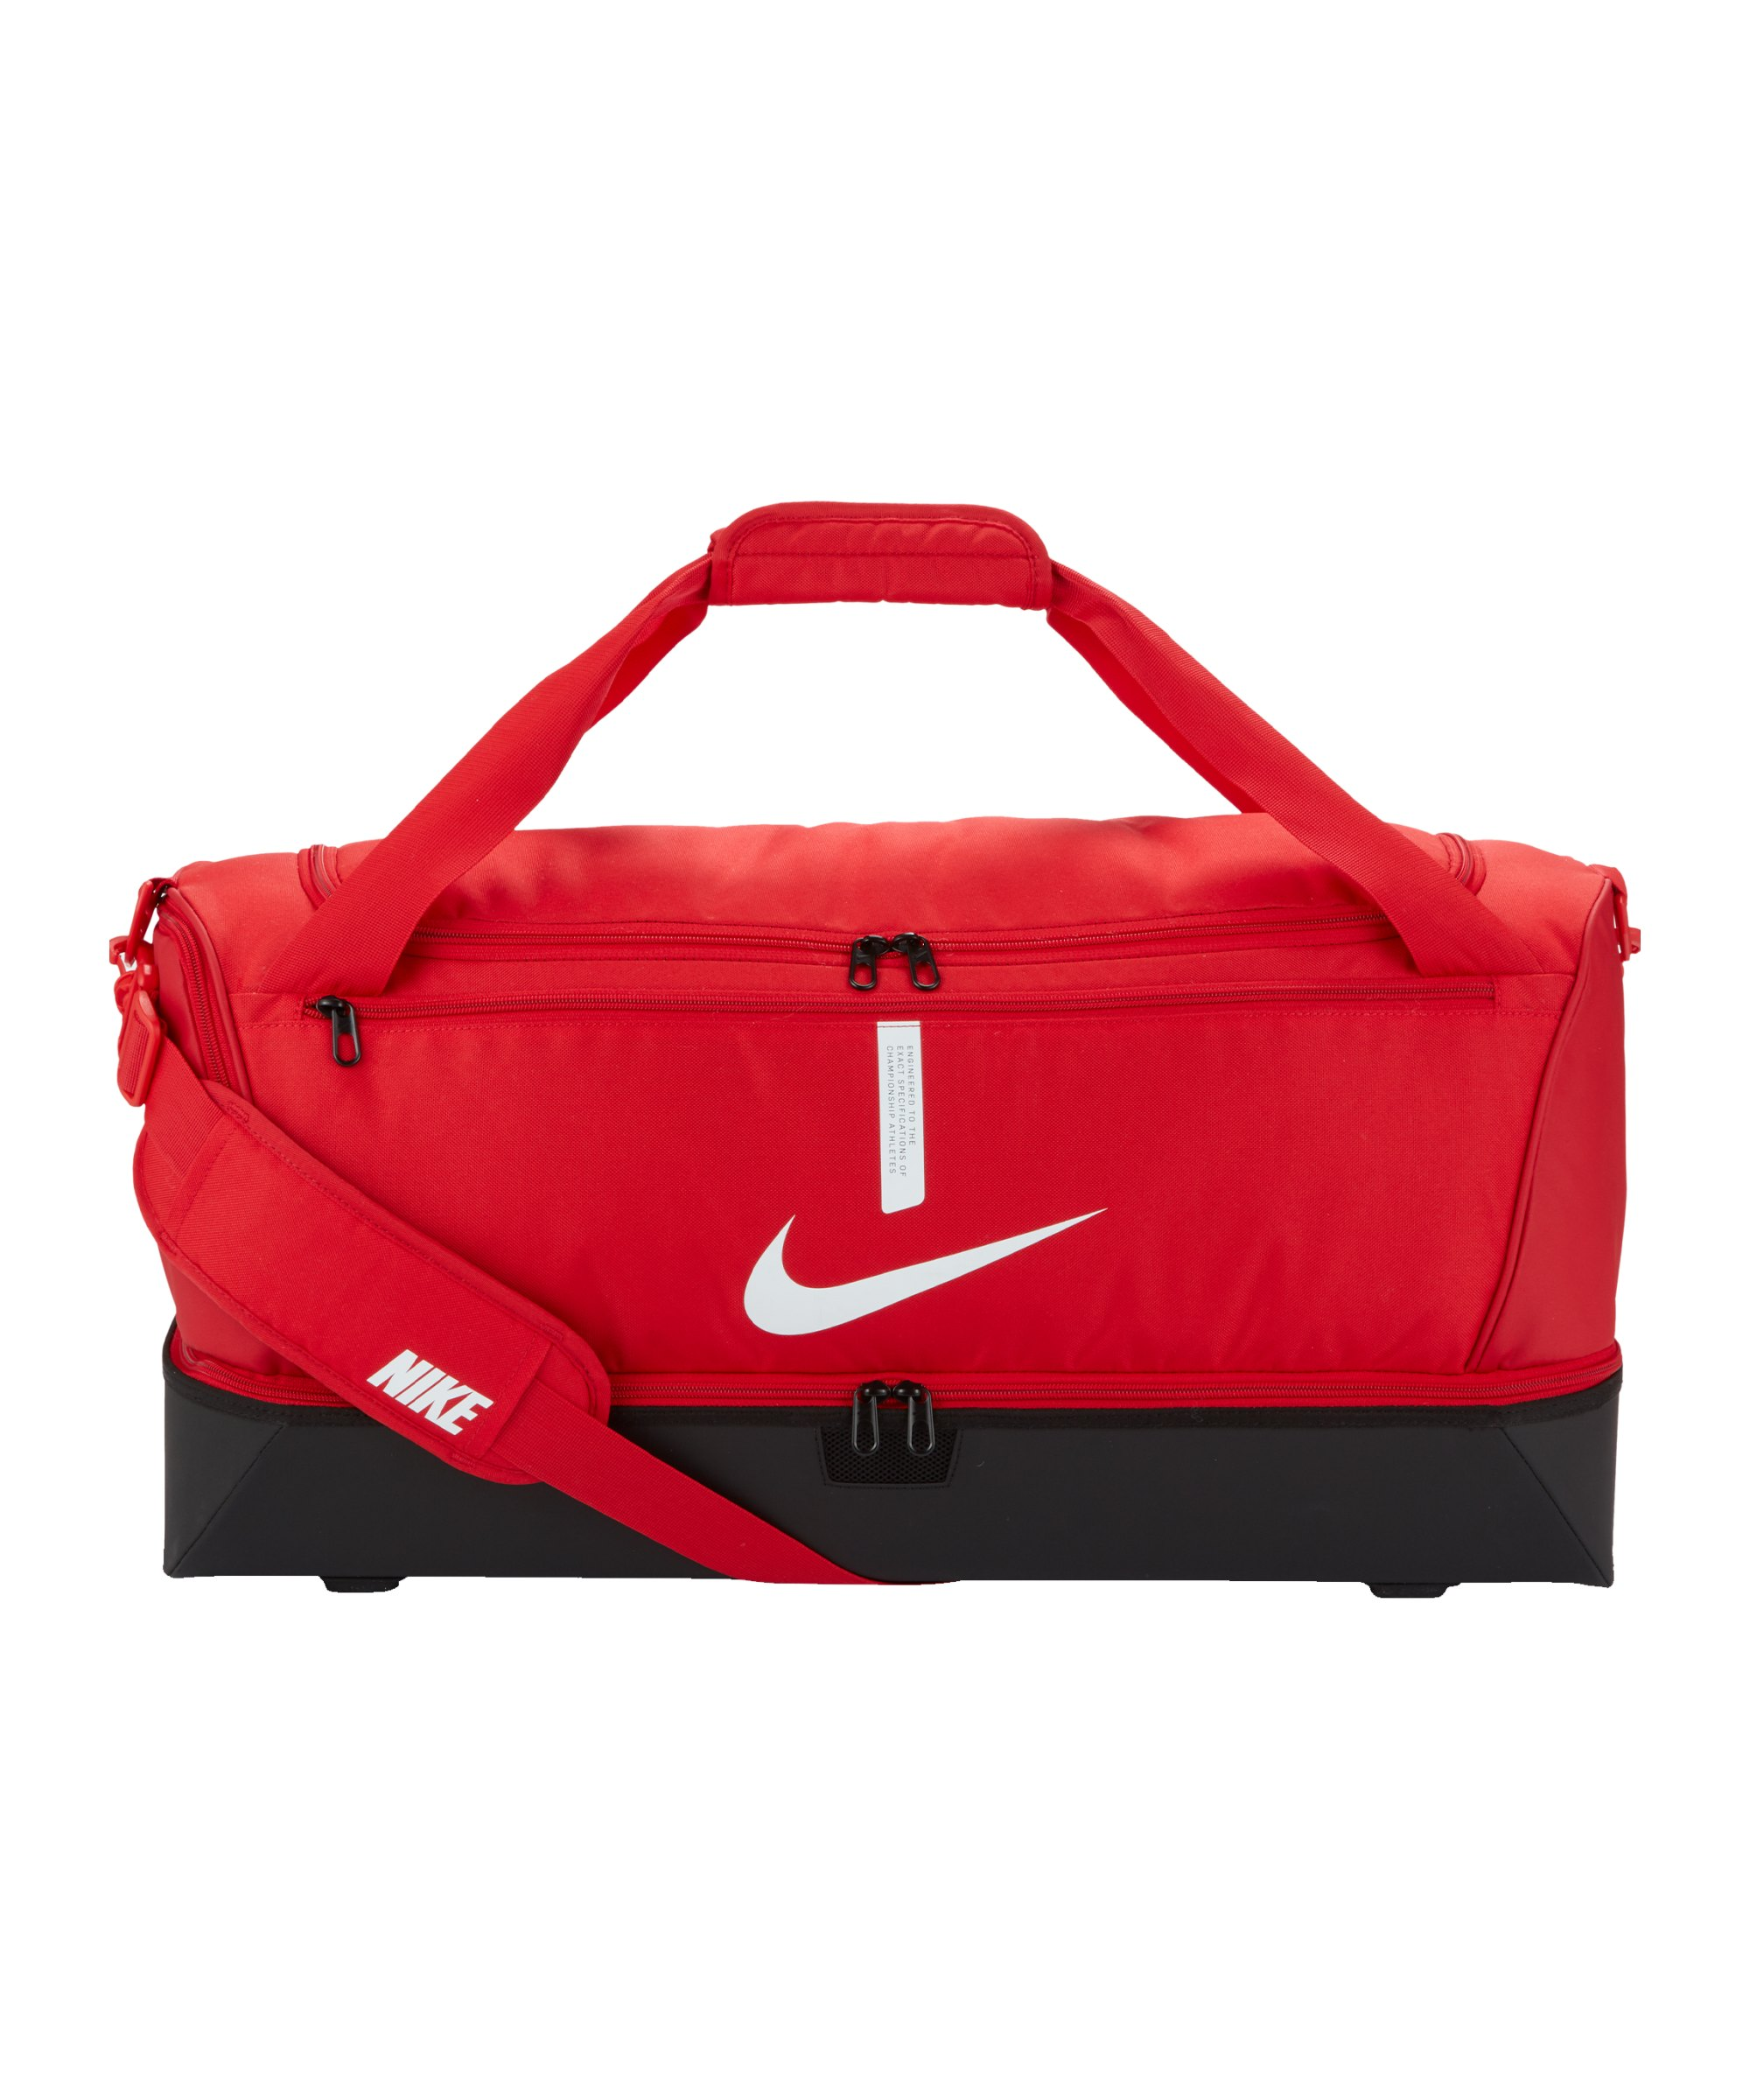 Nike Academy Team Hardcase Tasche Large Rot F657 - rot